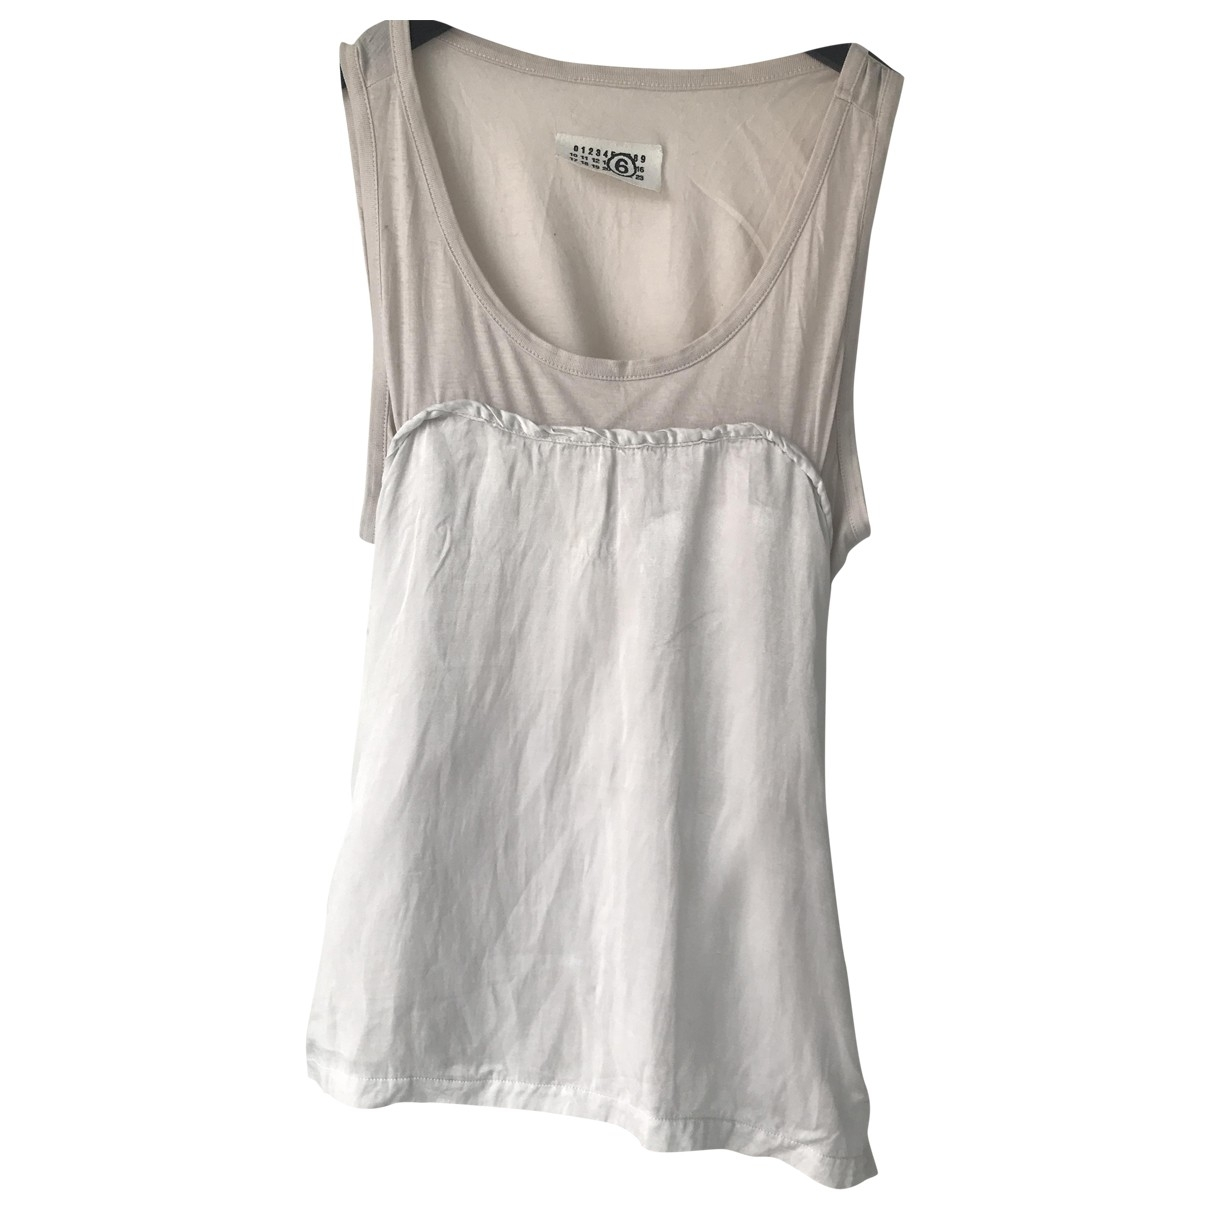 Mm6 \N Cotton  top for Women 42 IT